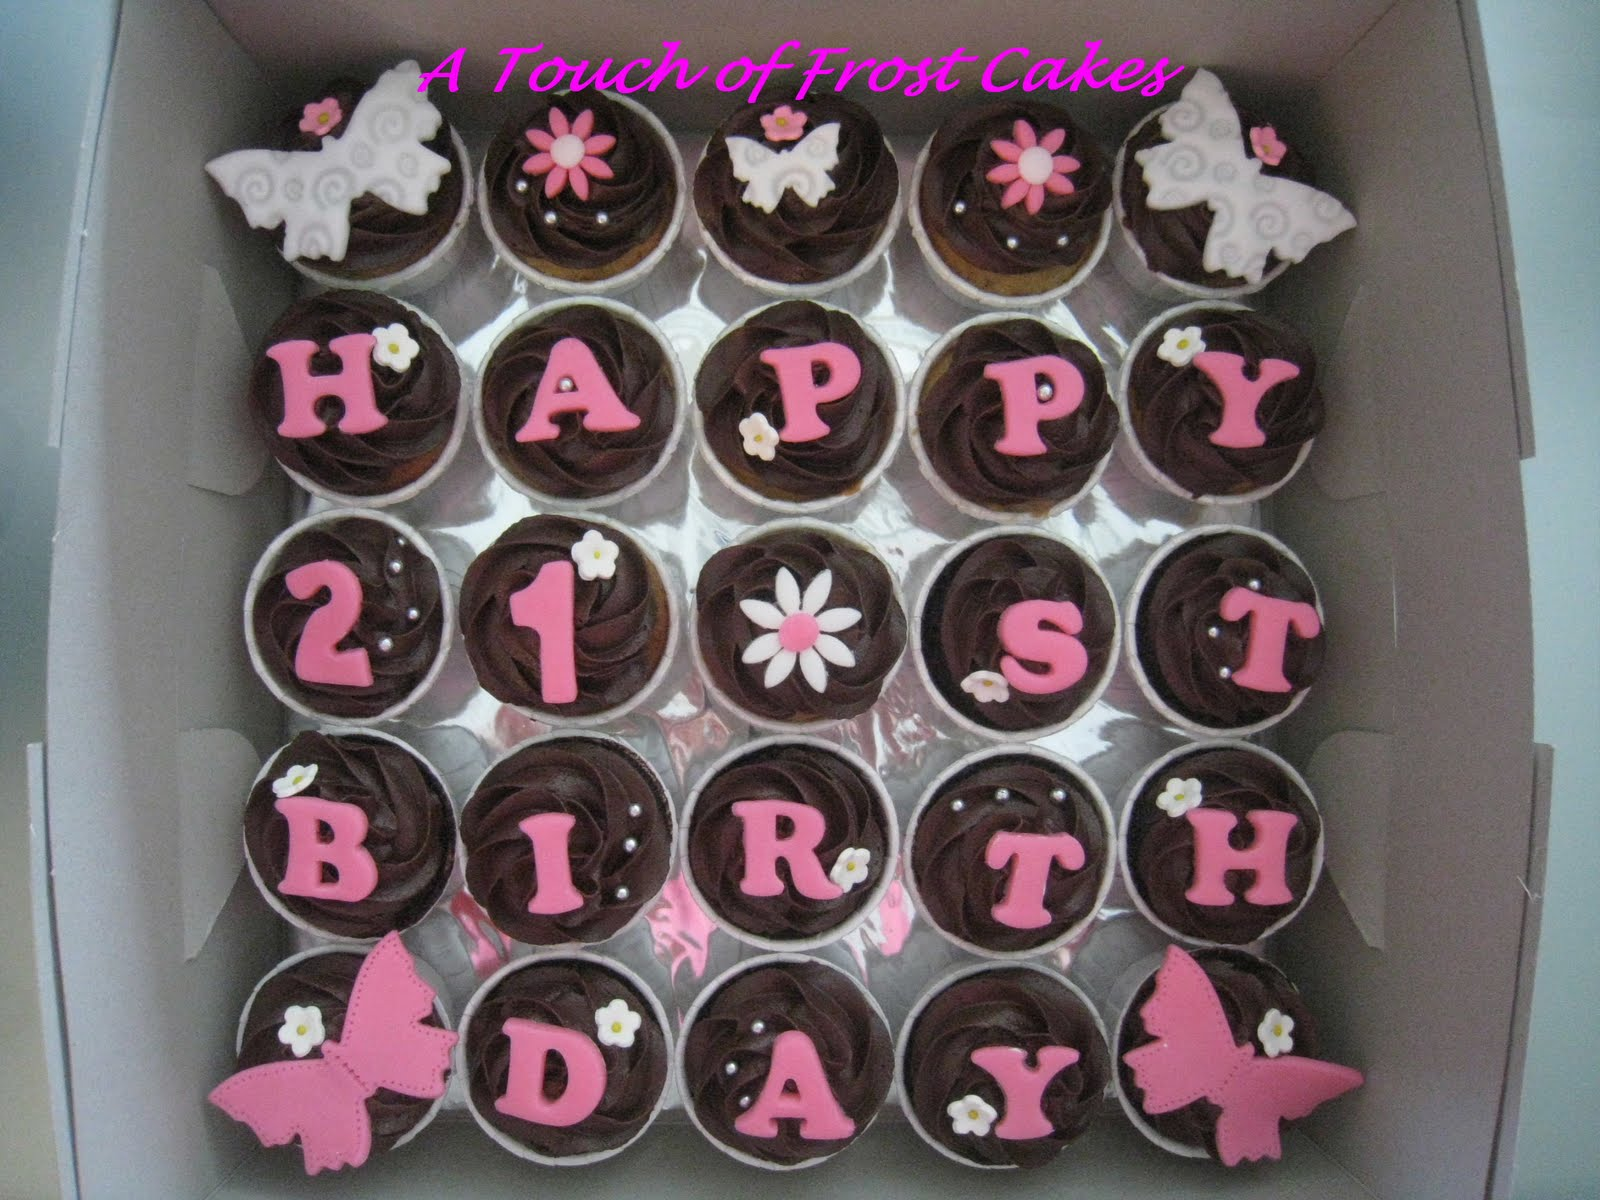 A Touch of Frost Cakes: 21st Birthday Cupcakes